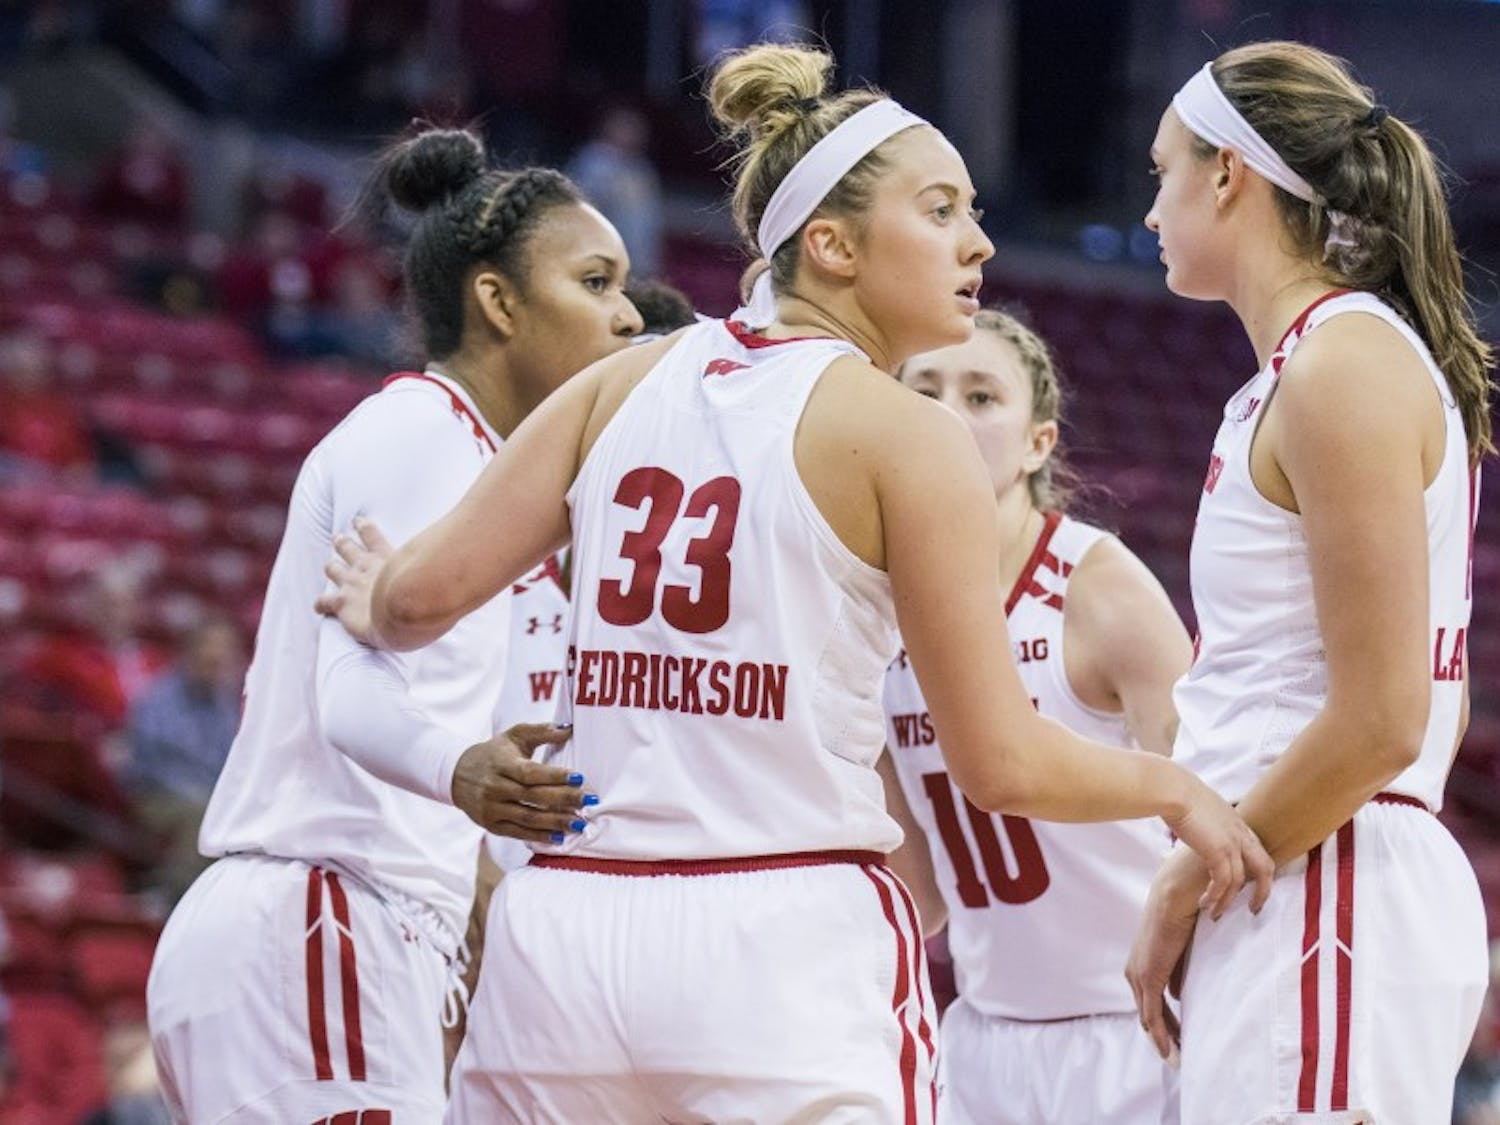 Wisconsin will have to stop Duke's well-rounded scoring attack to avoid its first home loss of the season on Wednesday.